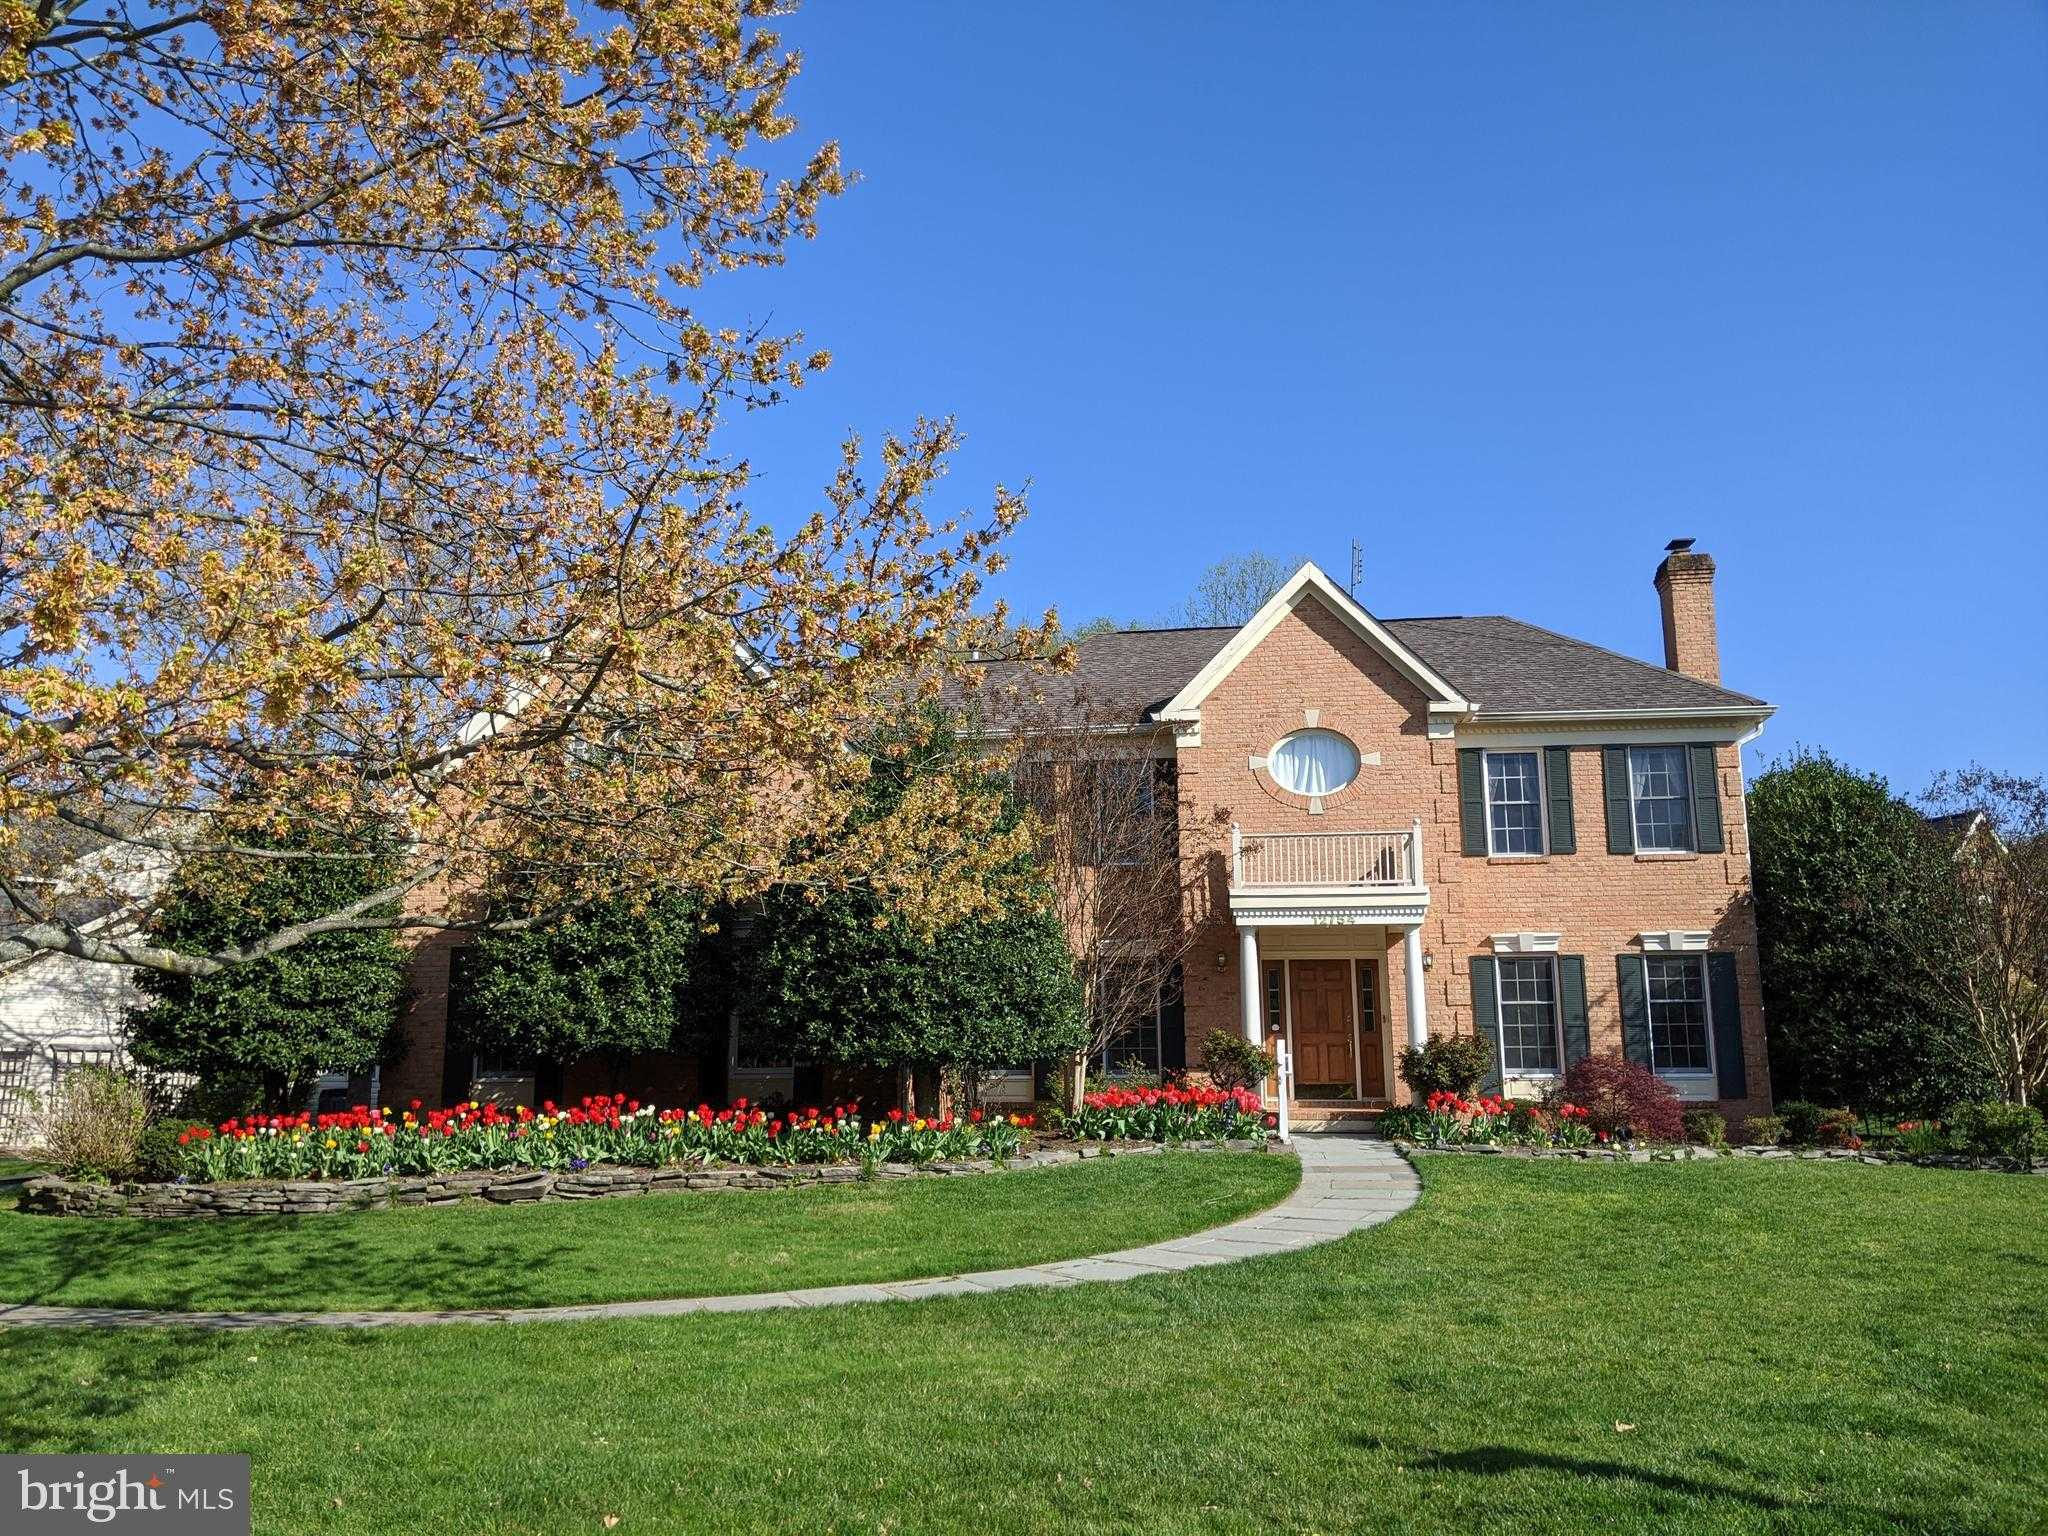 $6,000 - 5Br/5Ba -  for Sale in Century Oak, Fairfax